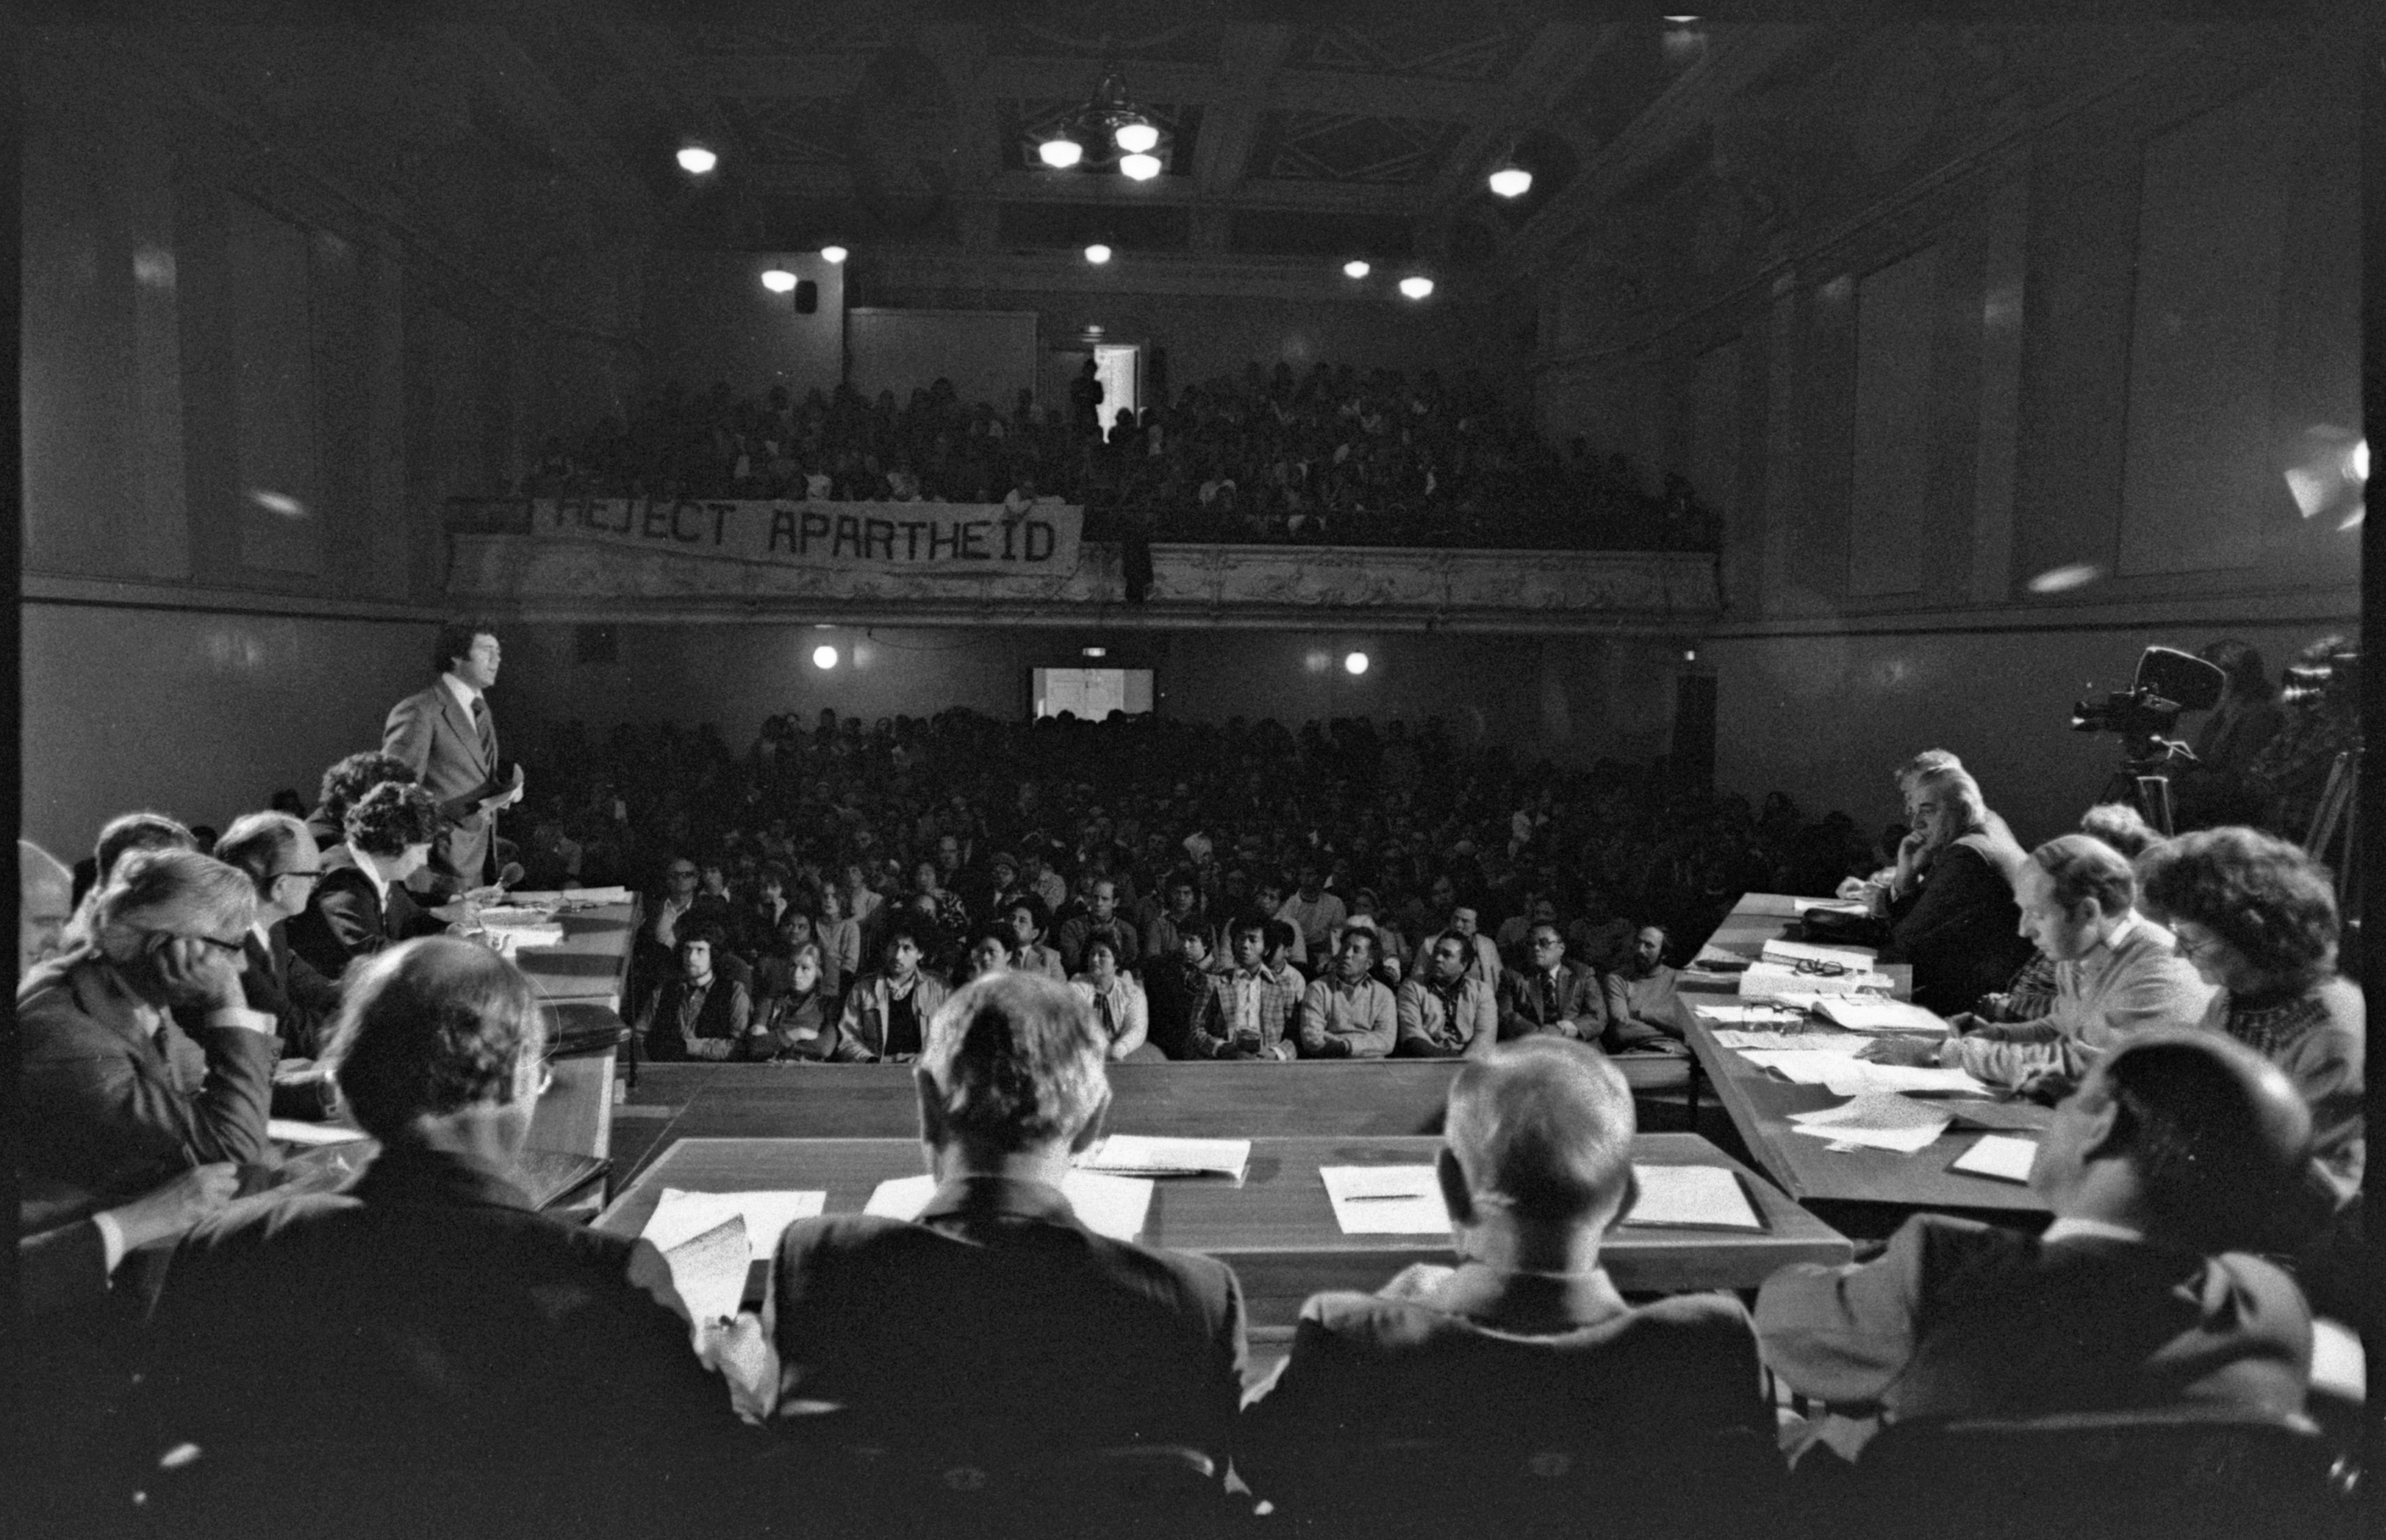 A black and white image shows a meeting on stage with a packed audience.